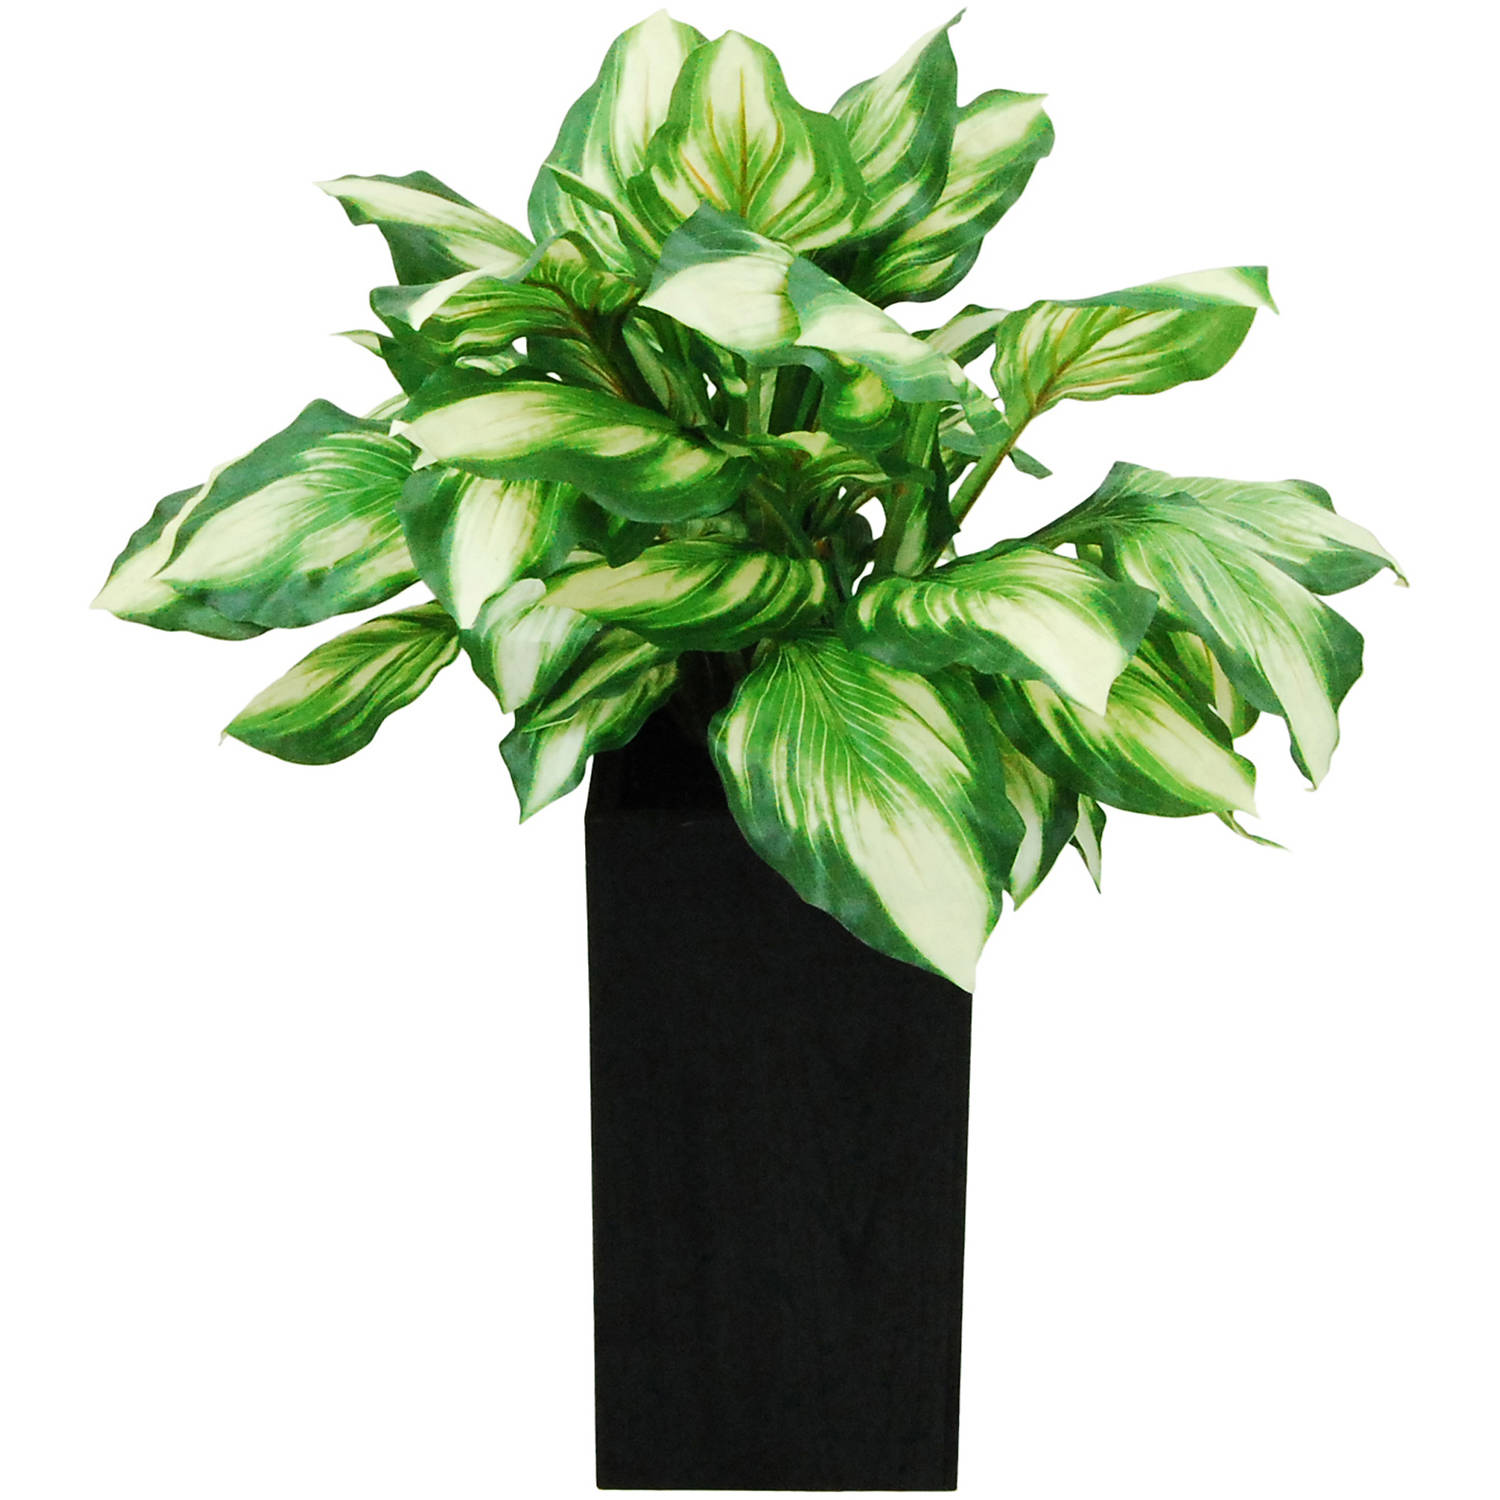 Hosta Planter in a Wooden Container